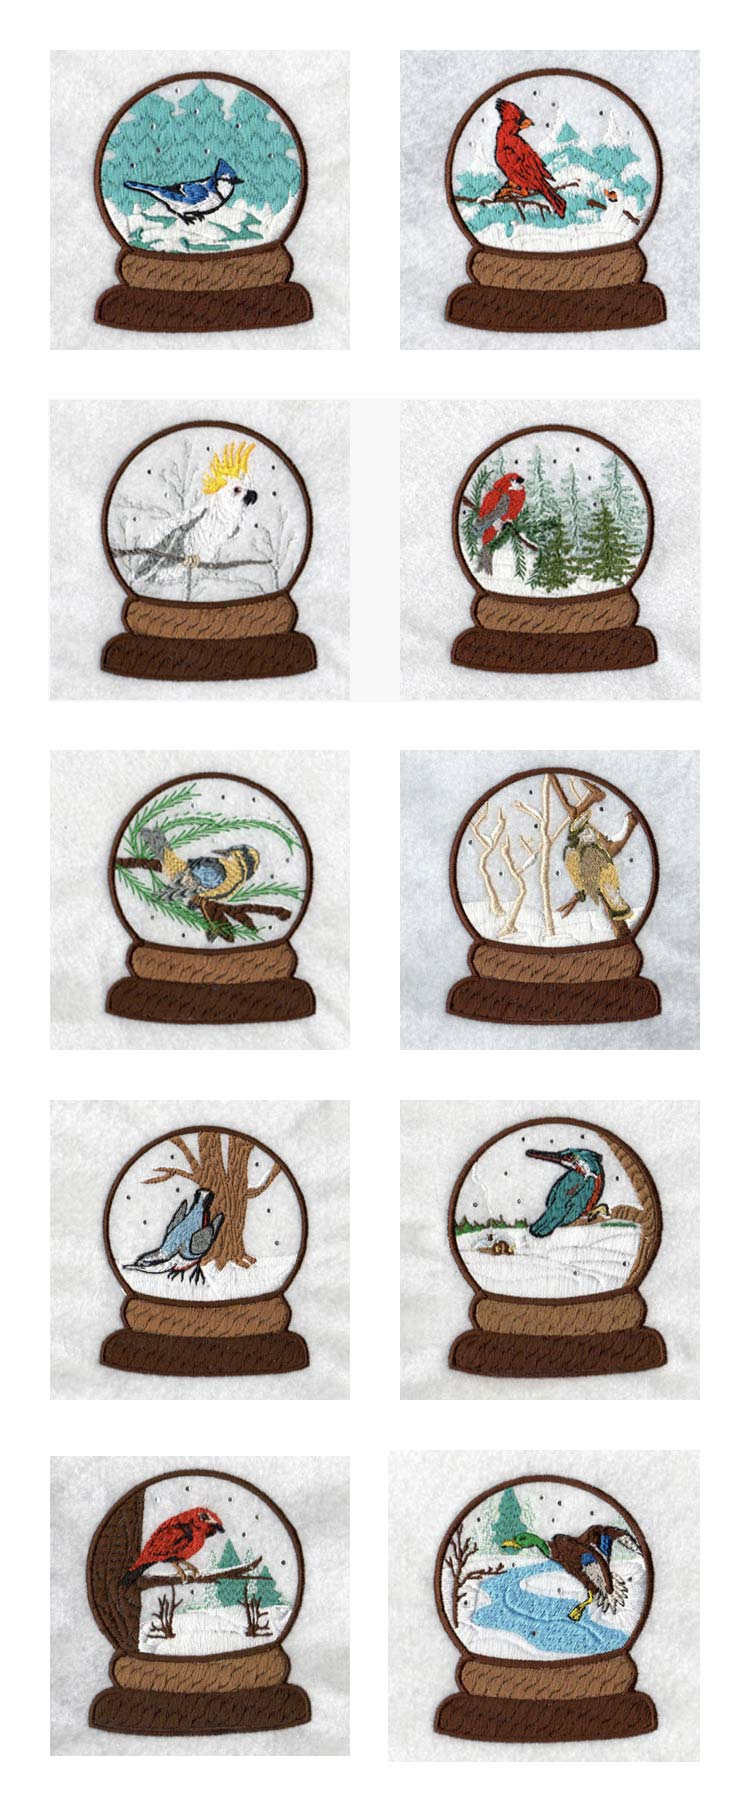 Winter Snow Globes Embroidery Machine Design Details